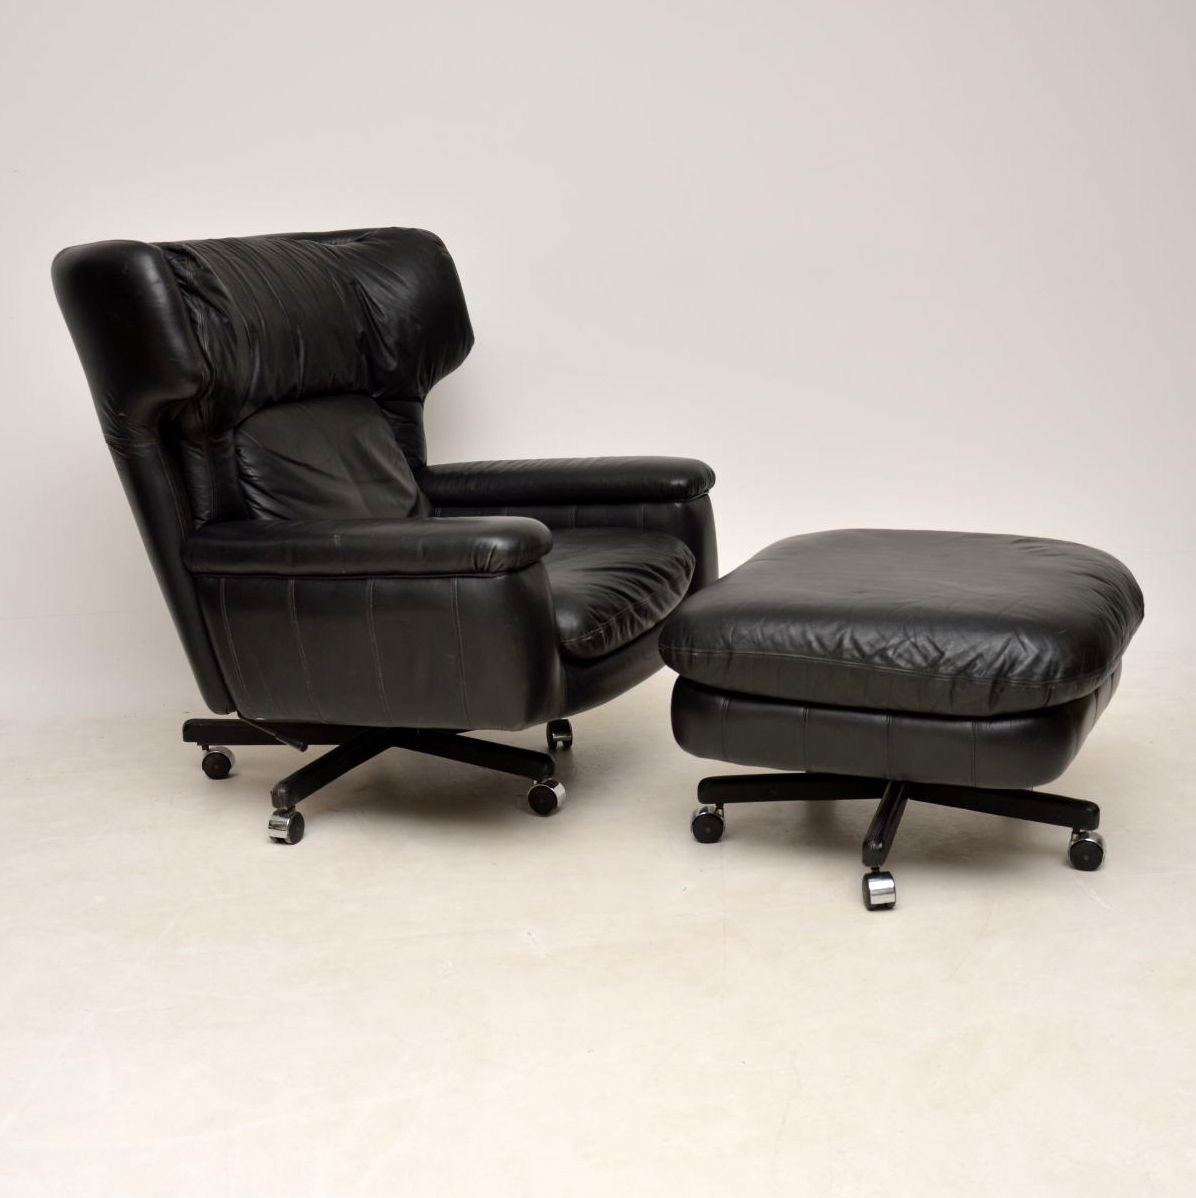 Leather Reclining Chairs 1960 S Vintage Leather Reclining Armchair Stool